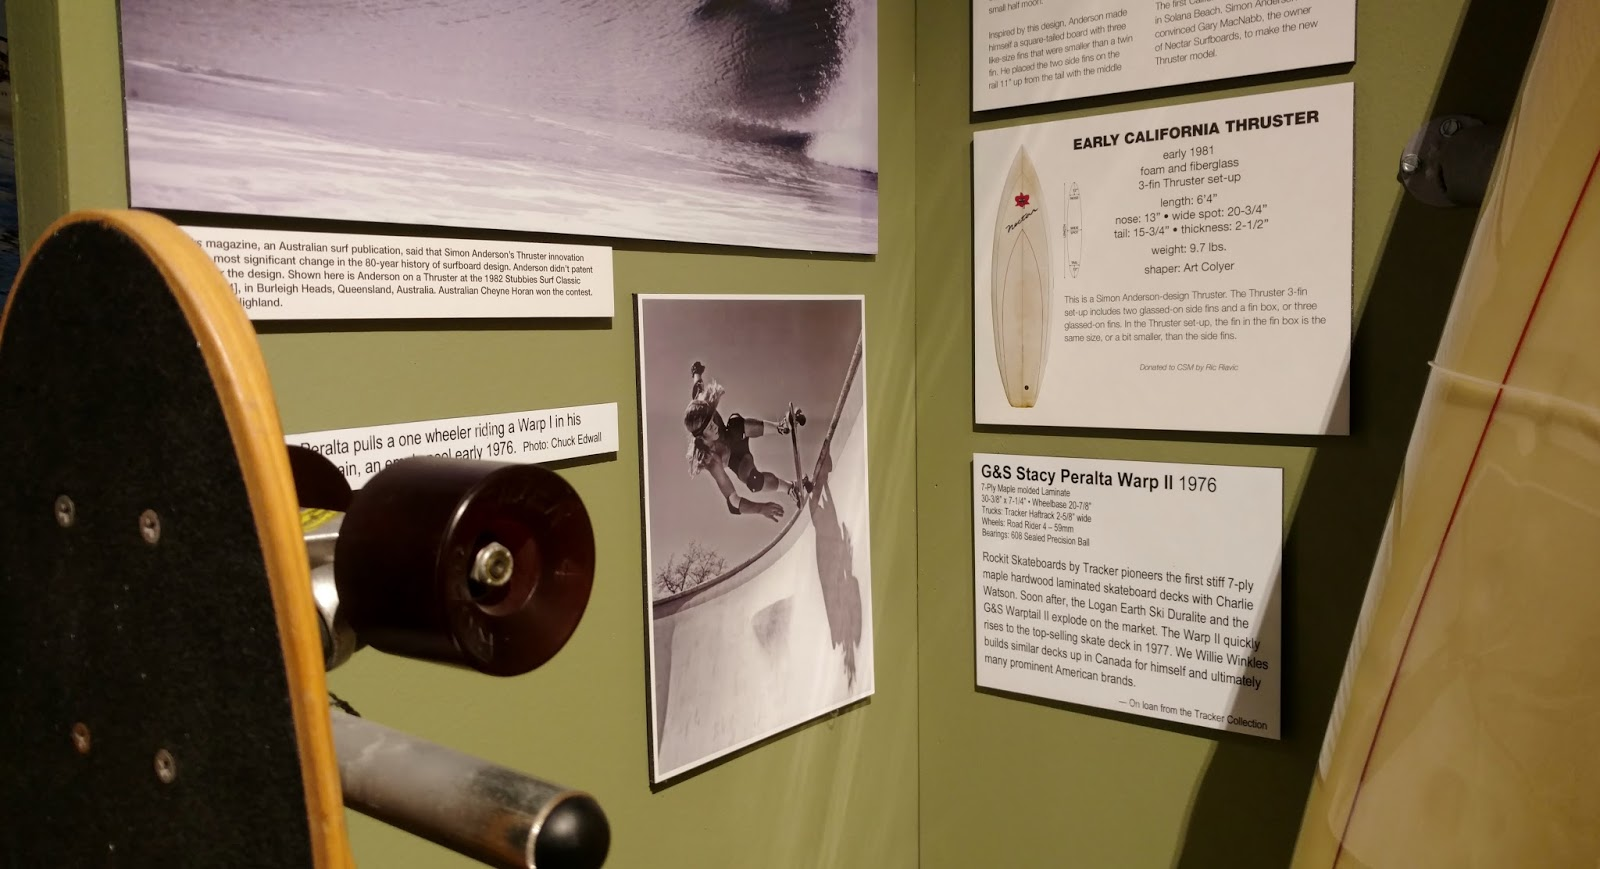 C Bakunas Art: A Visit To The California Surf Museum In